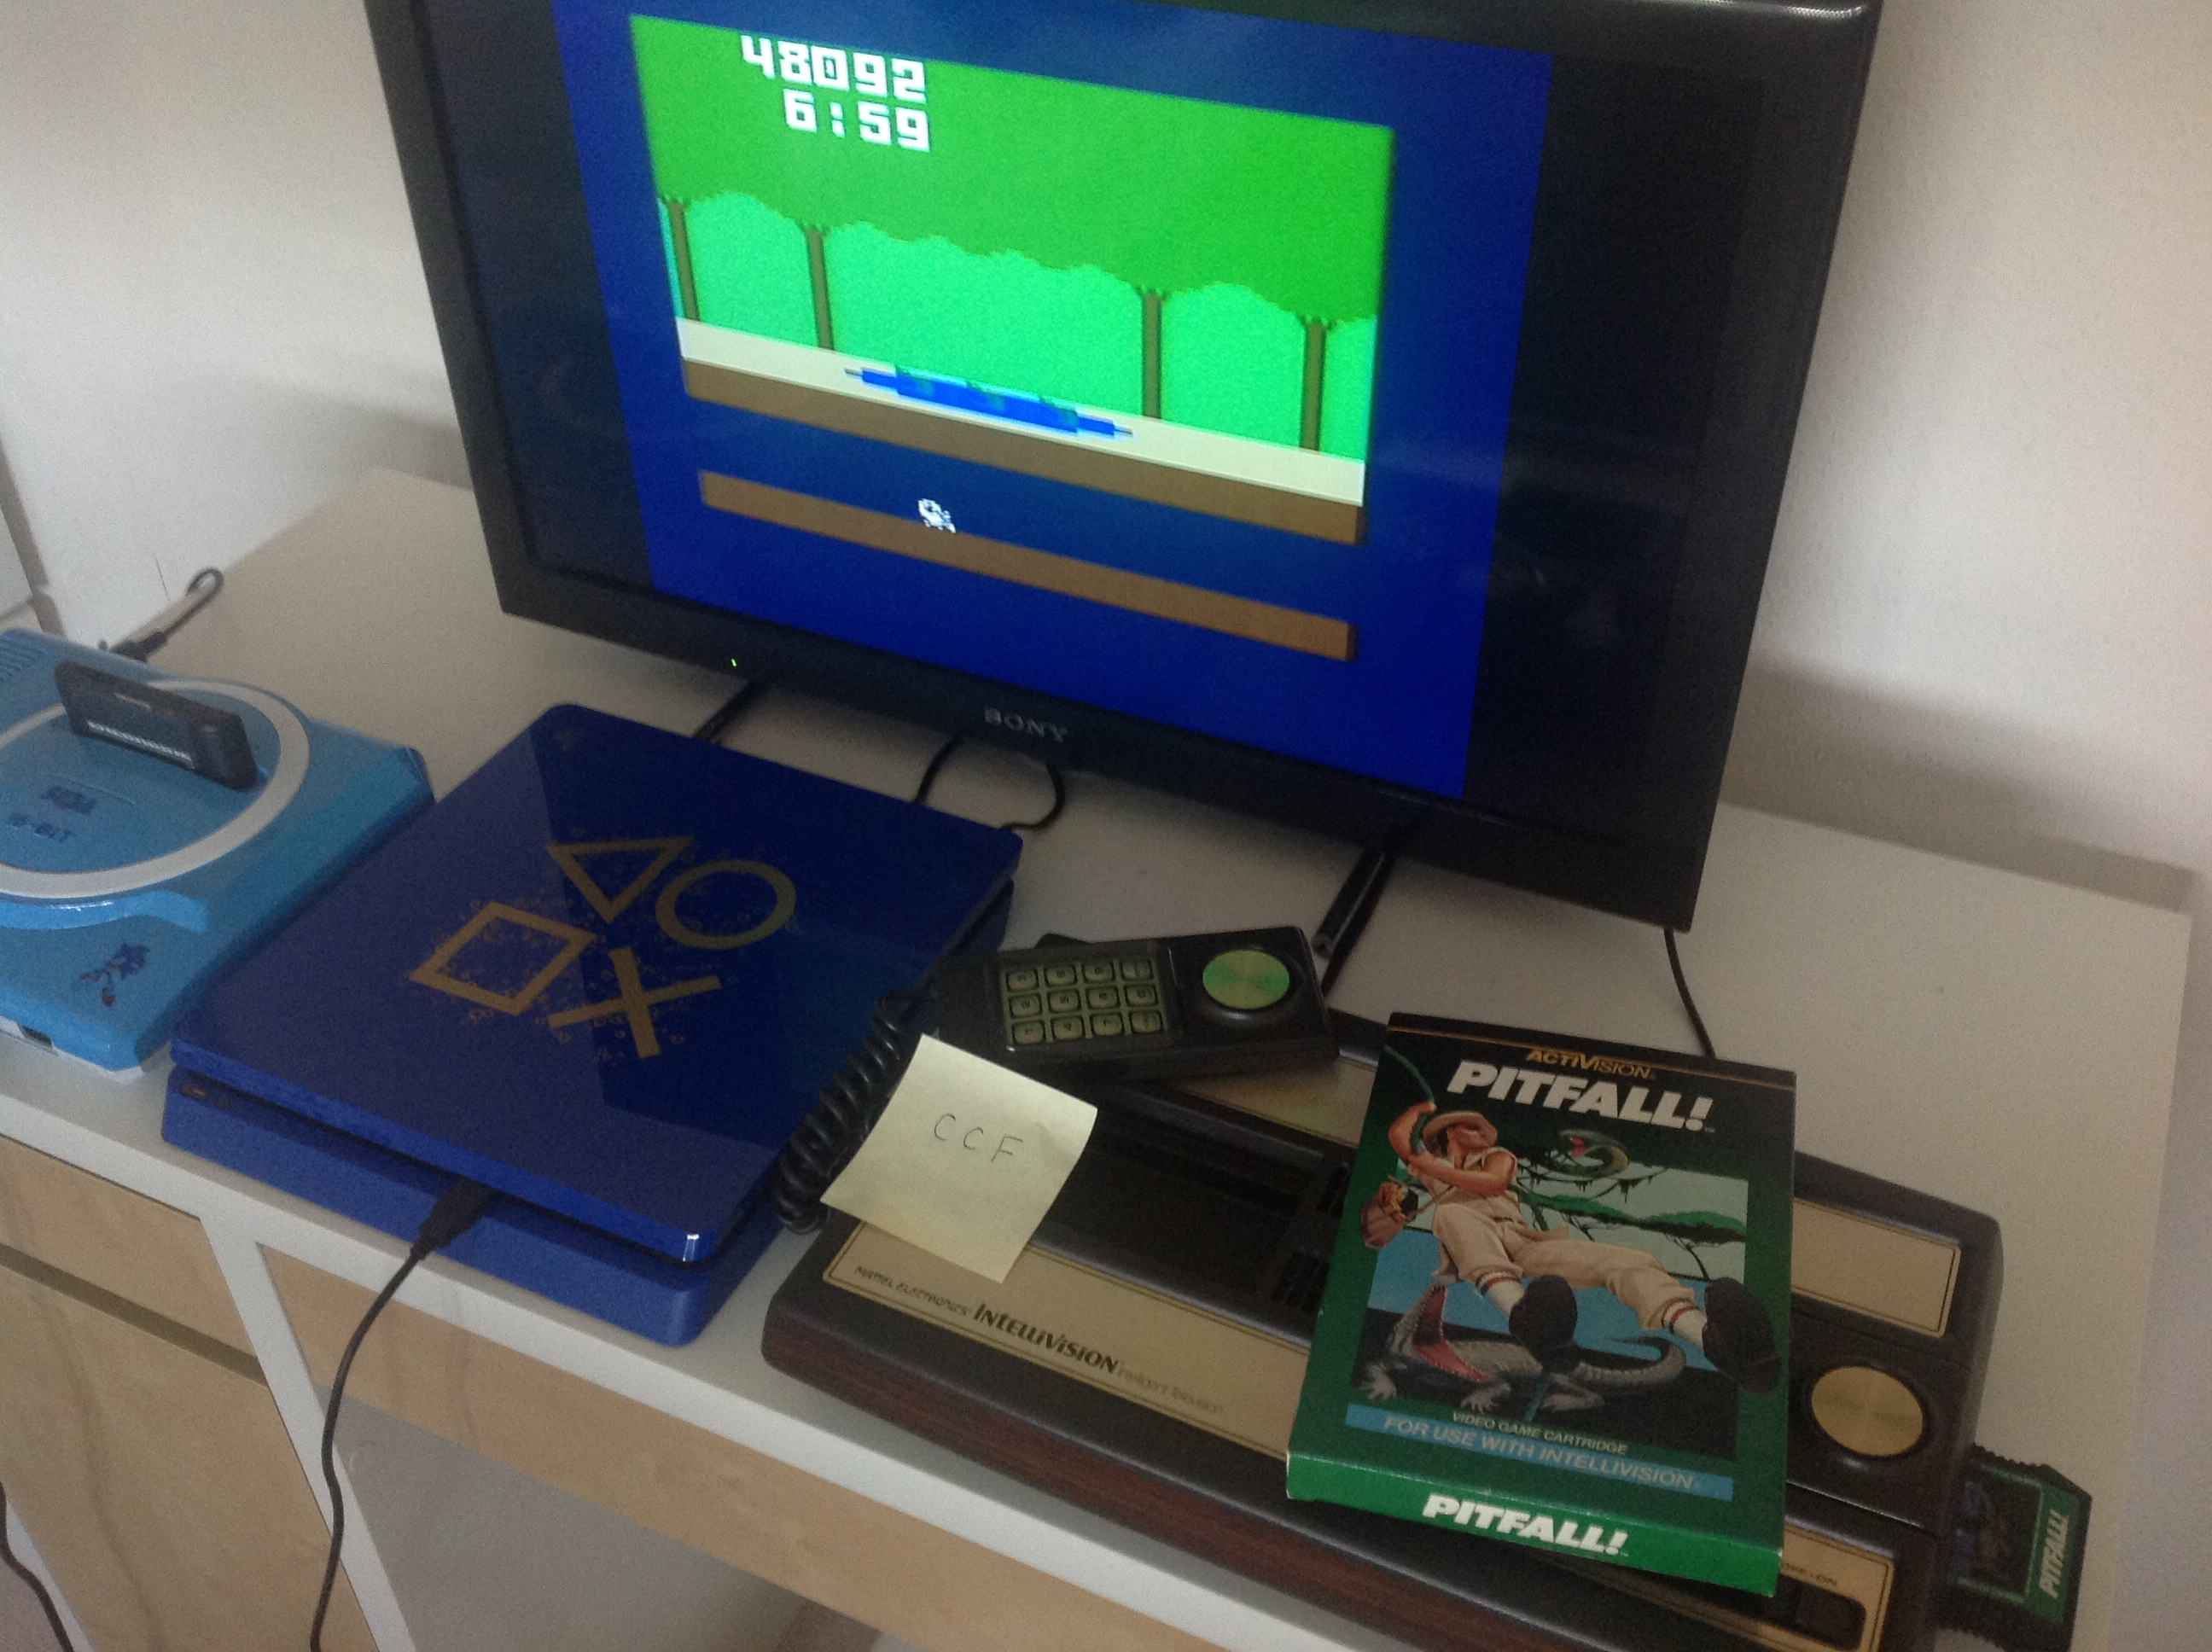 CoCoForest: Pitfall (Intellivision) 48,092 points on 2018-07-20 02:04:07